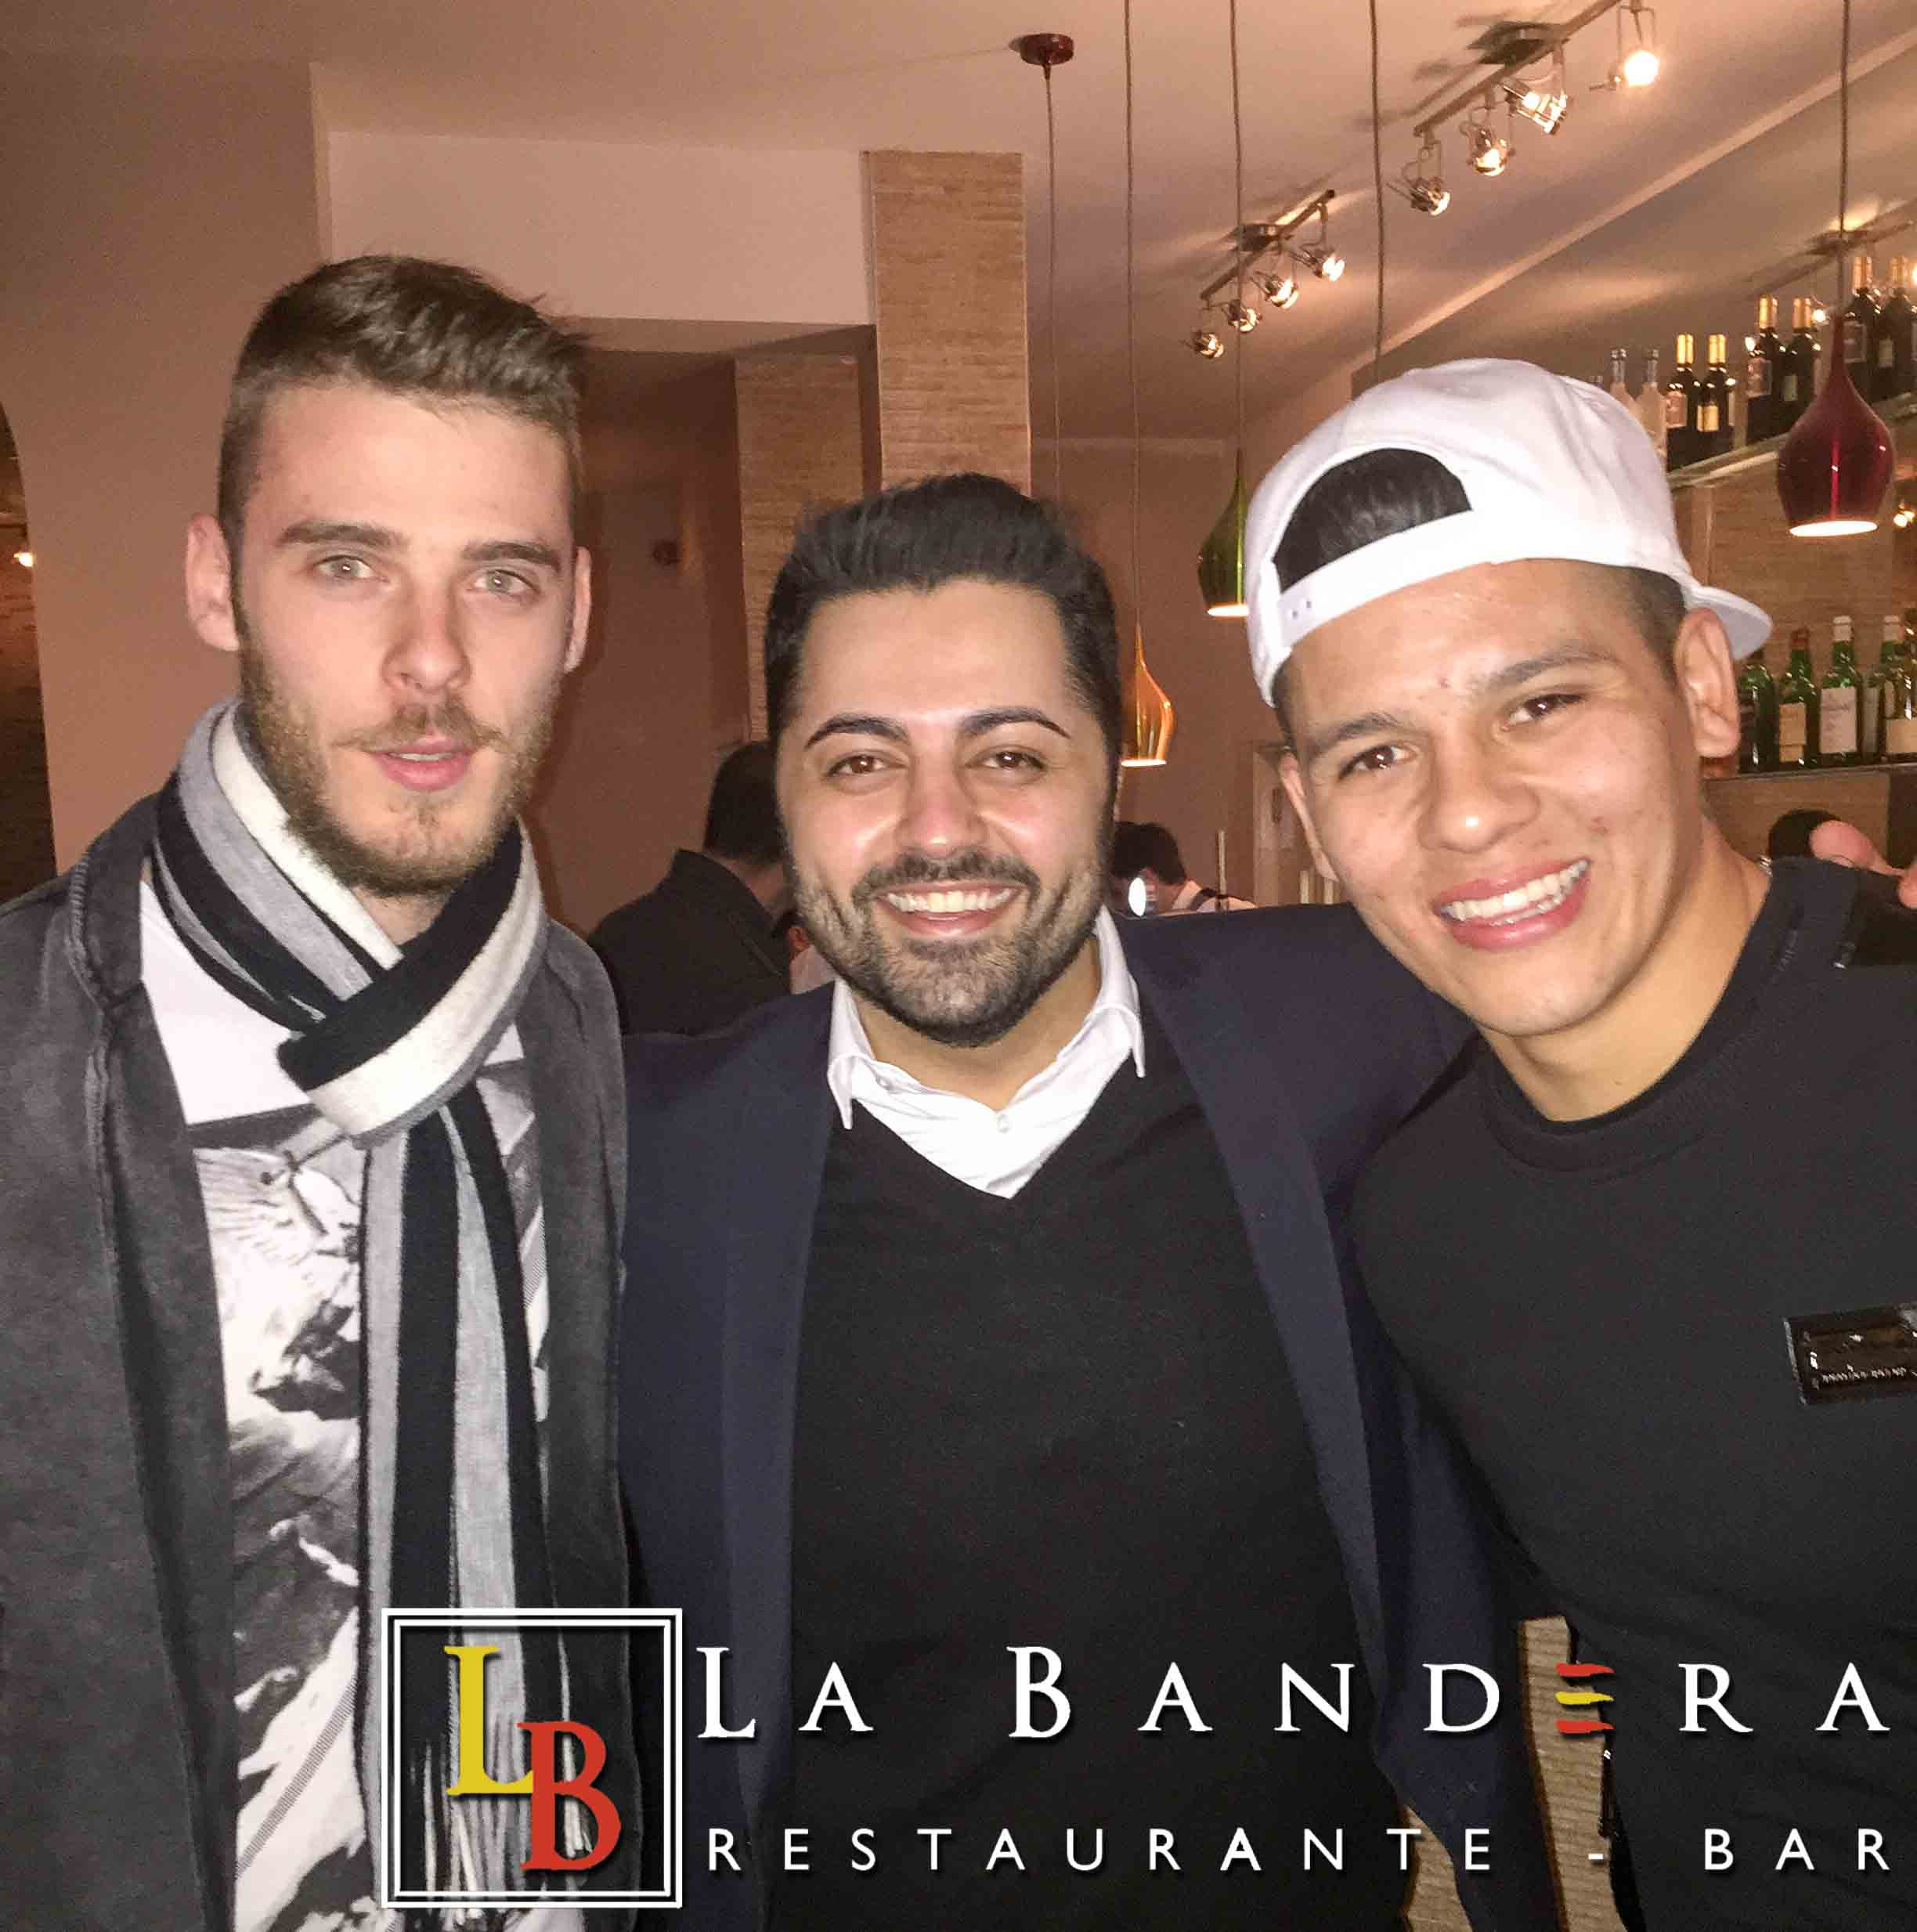 David De Gea and Marcos Rojo at La Bandera